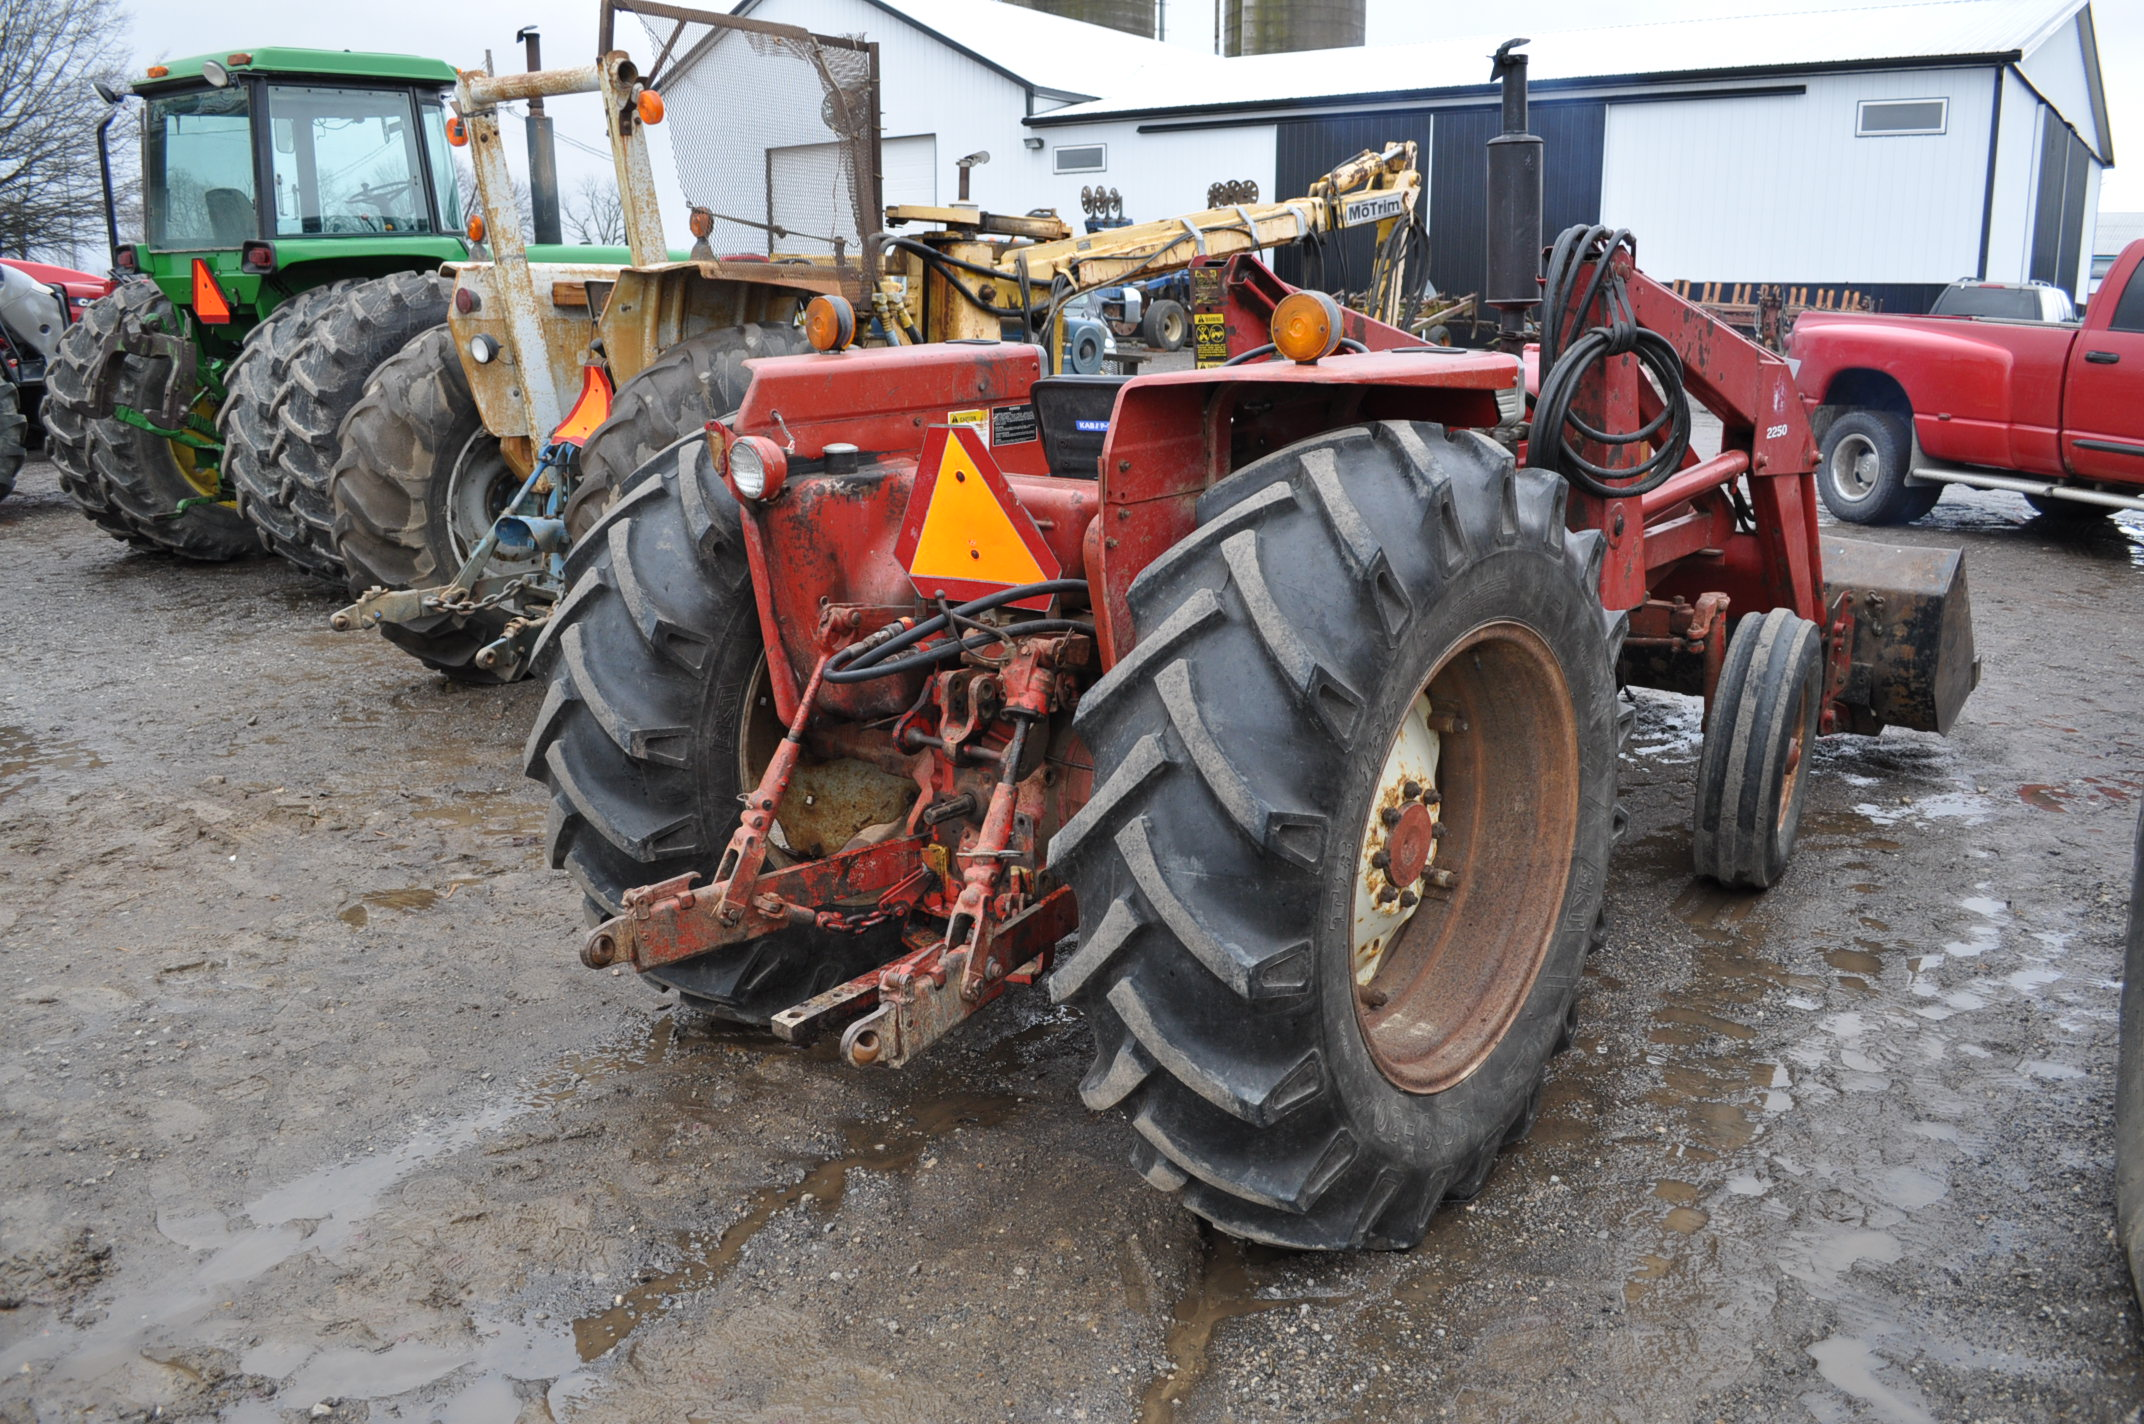 International 674 tractor, 16.9-30 rear, 7.50-16 front, diesel, single hyd, 3pt, 540 PTO, sells with - Image 3 of 16